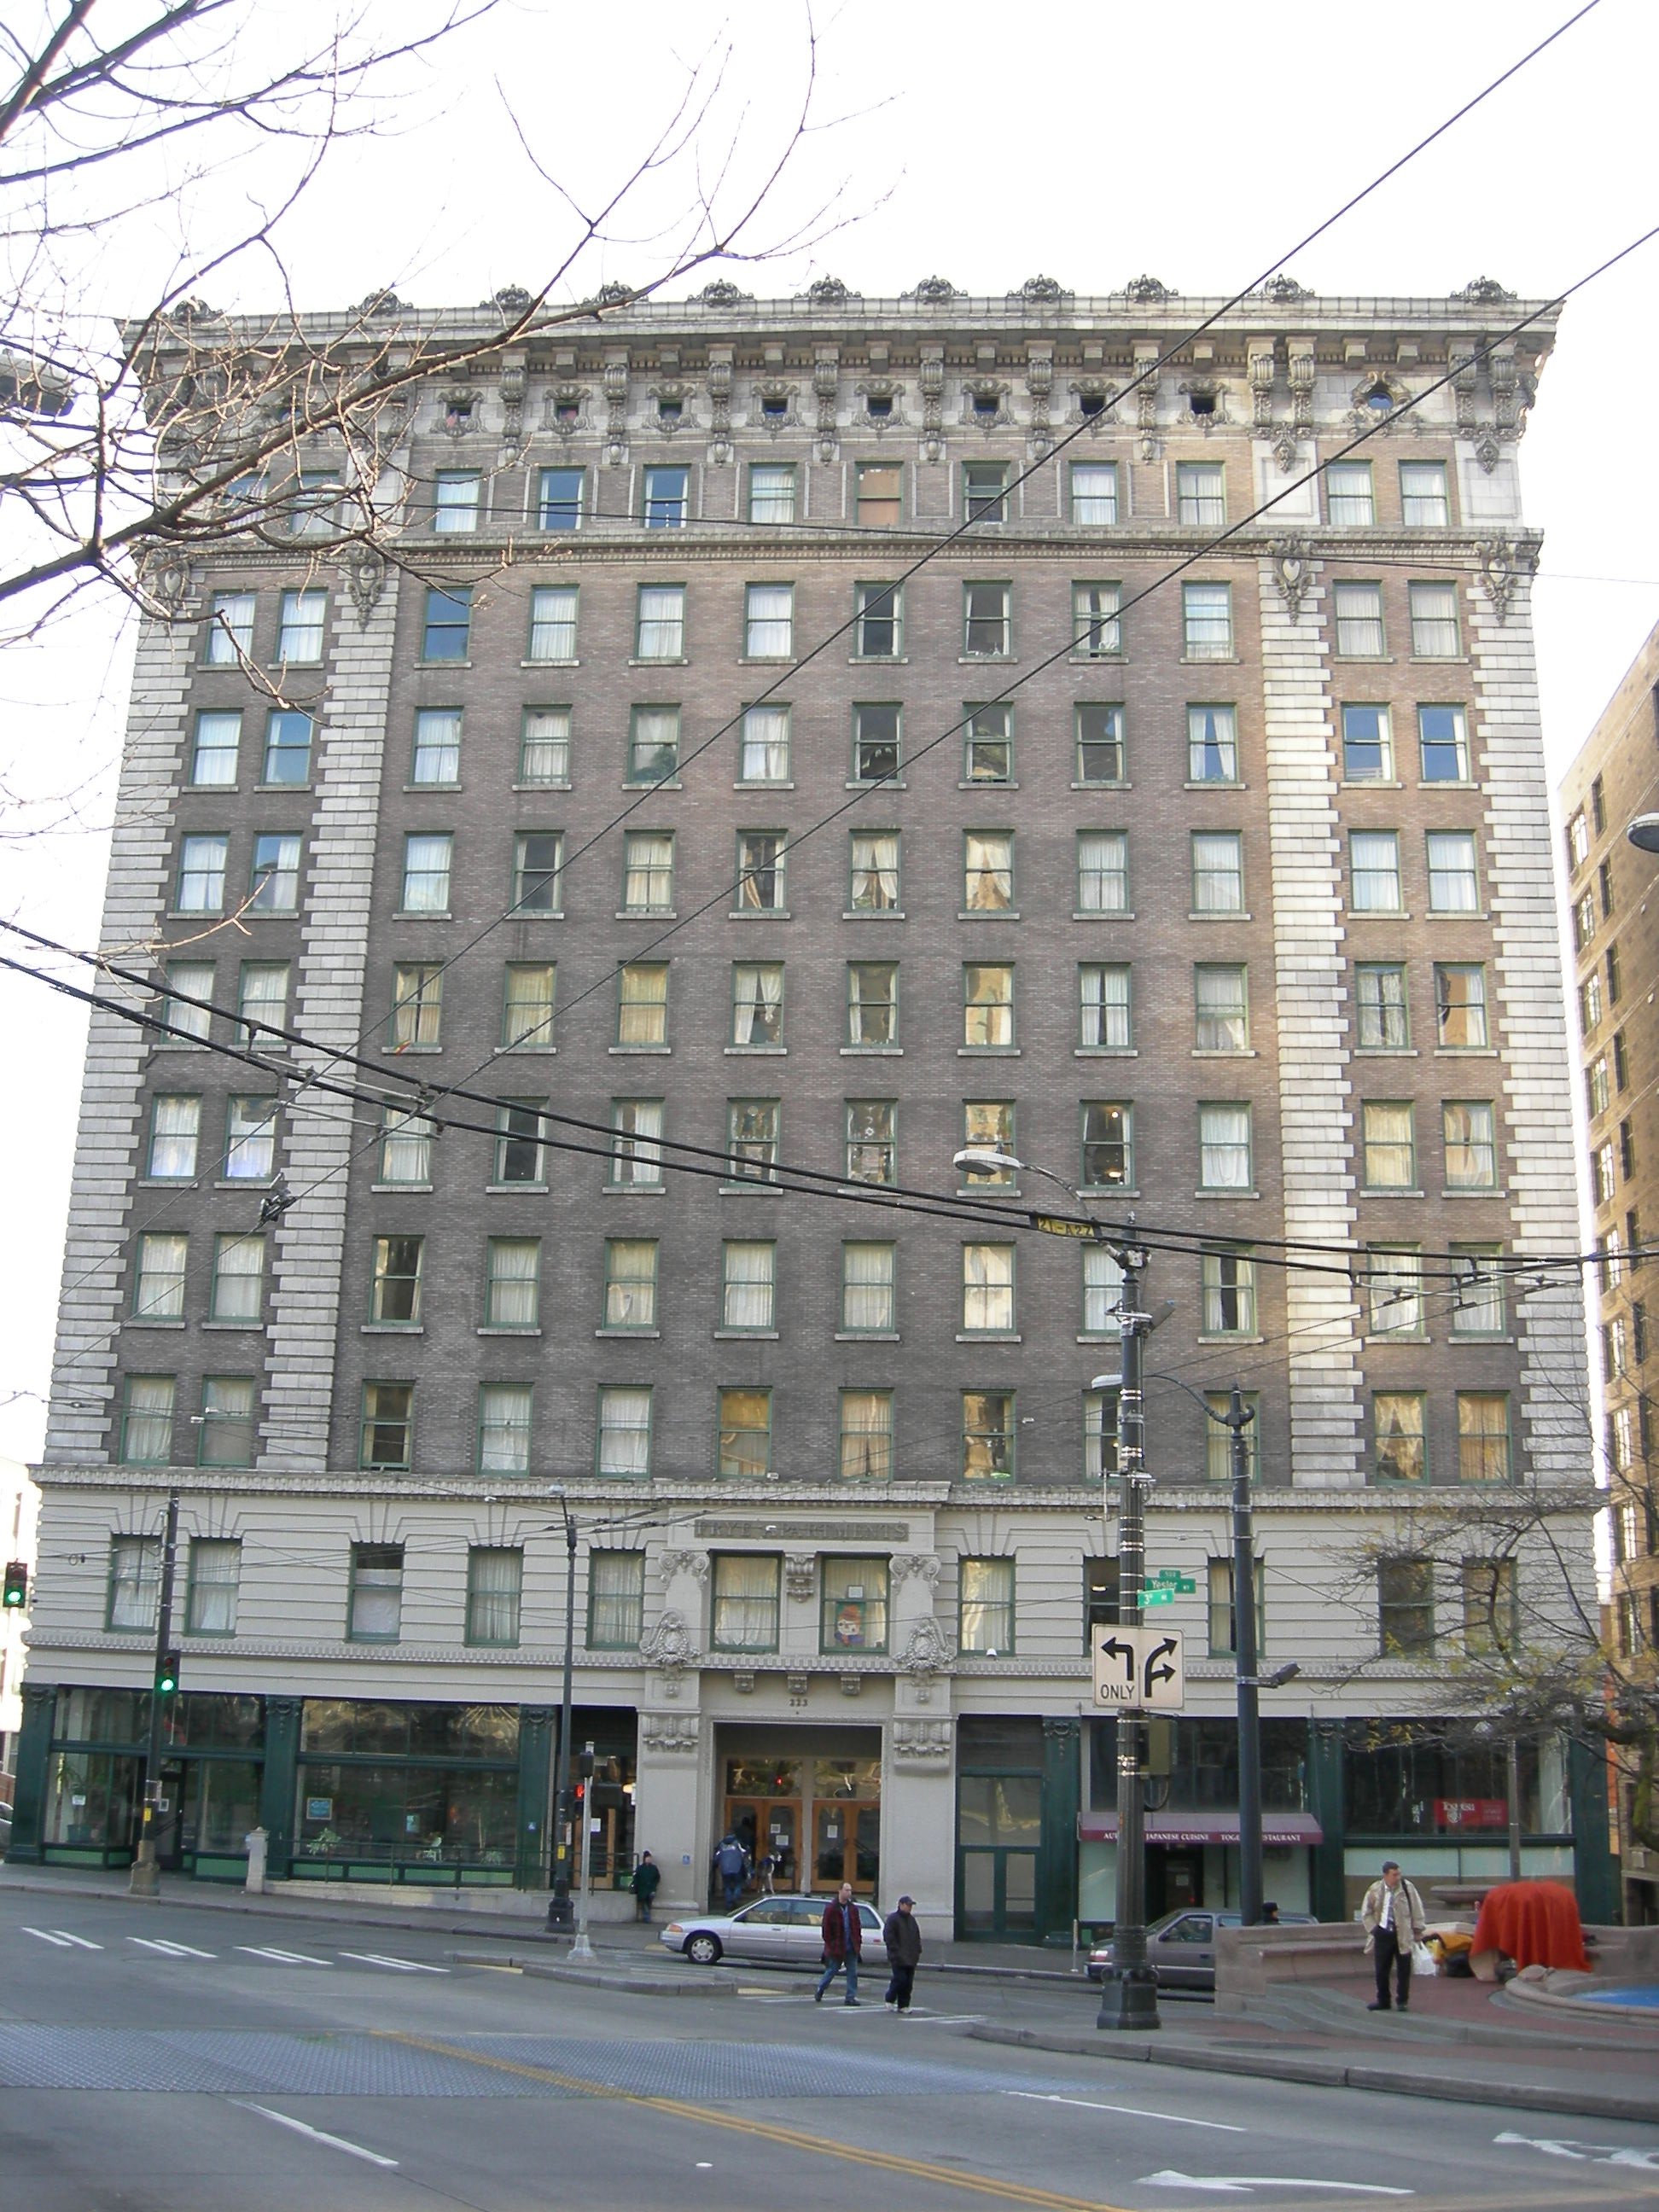 File:Seattle - Frye Apartments 03.jpg - Wikimedia Commons